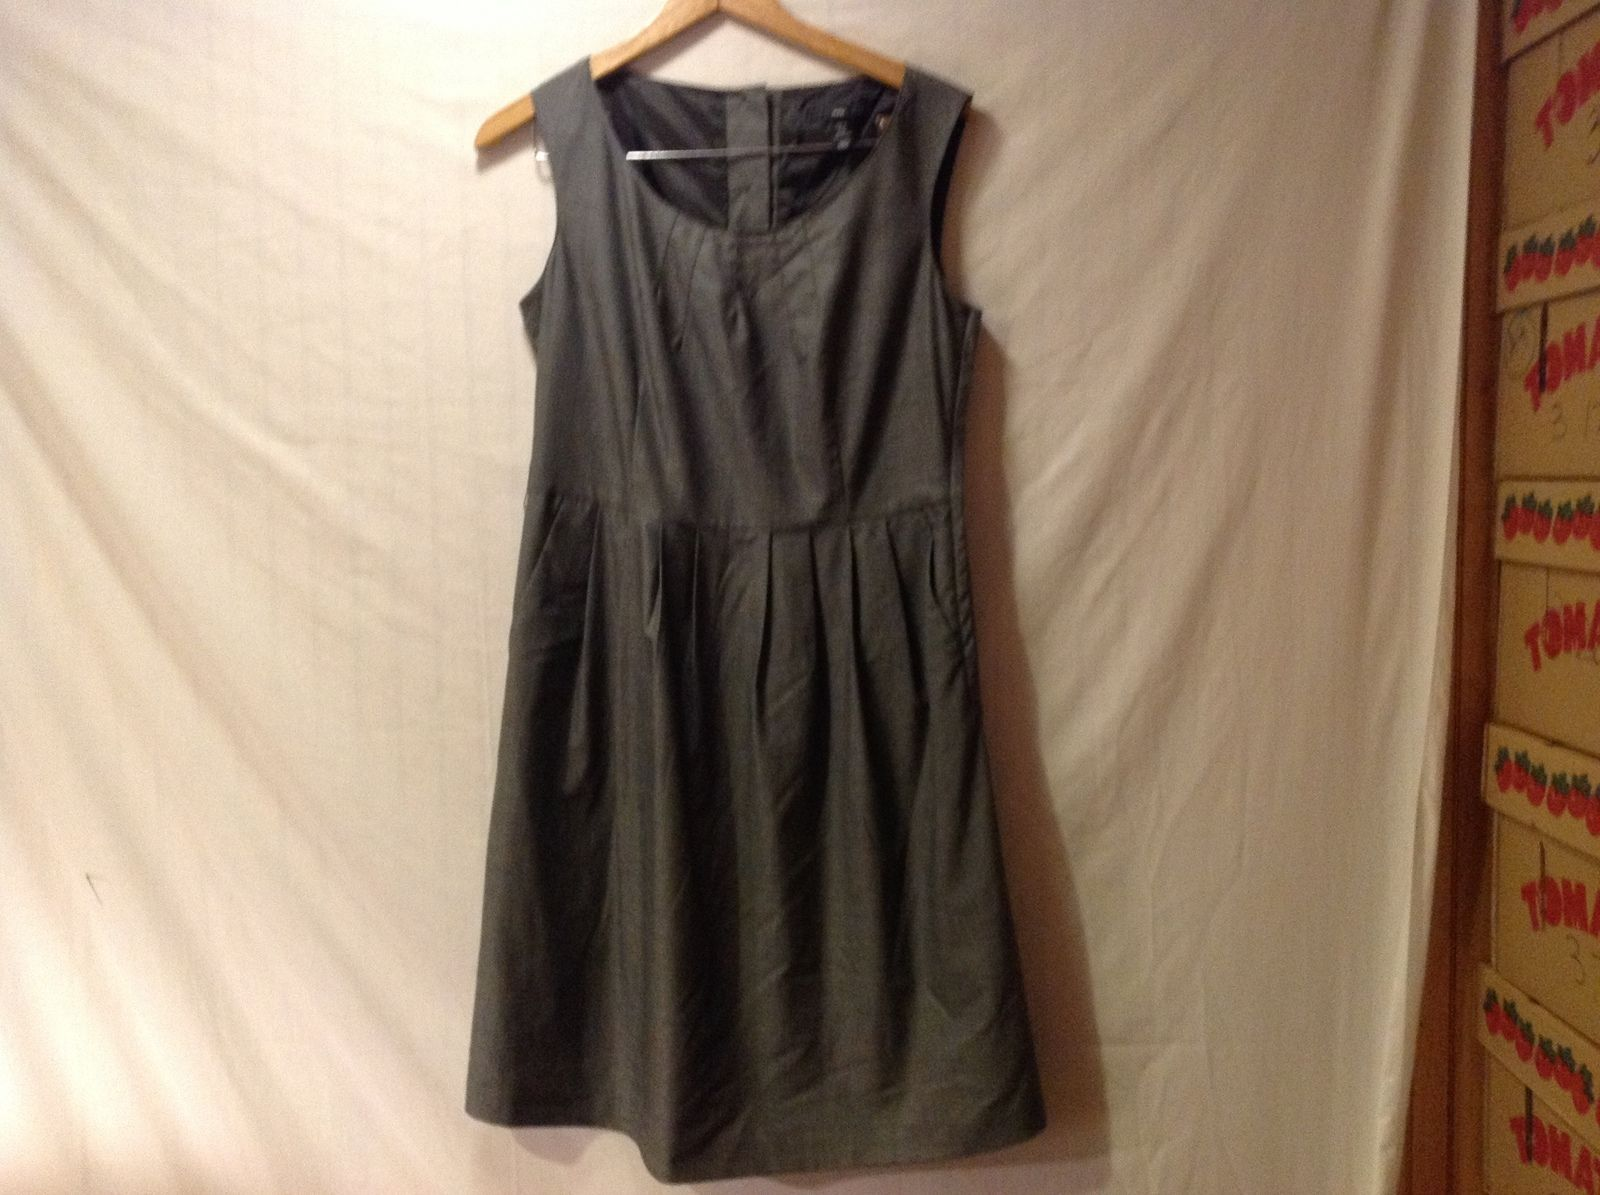 H&M Woman's Gray Dress 'Size 12